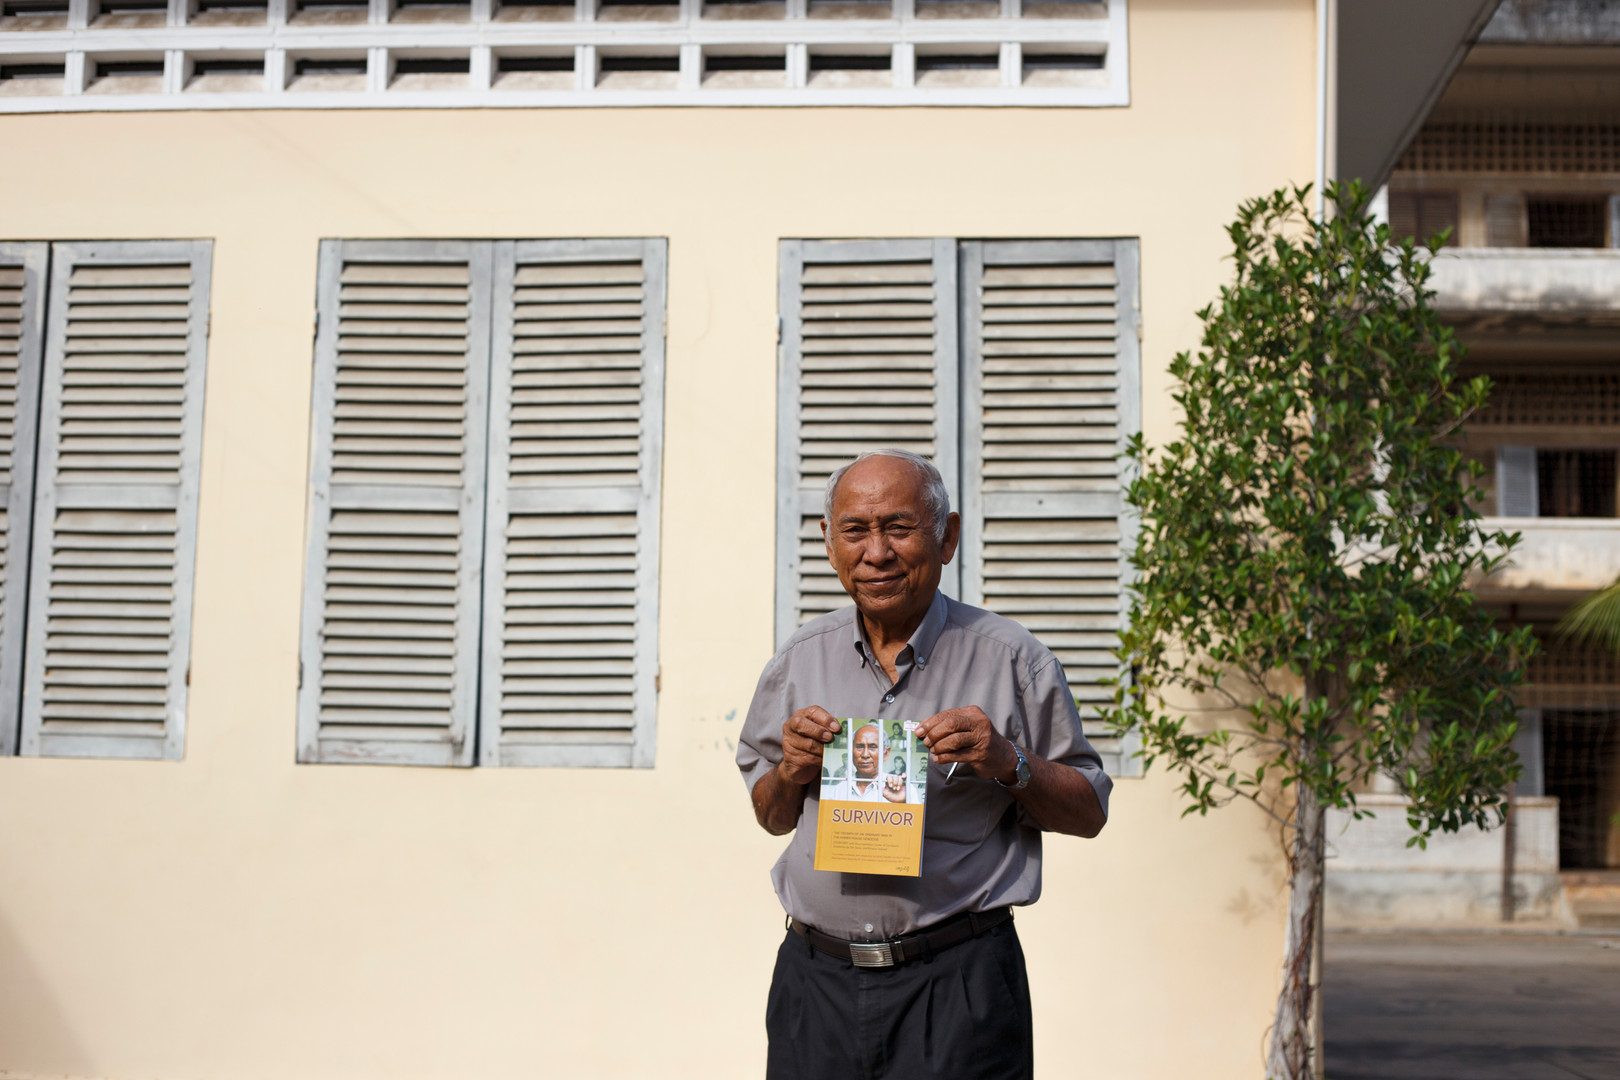 Chum Mey, survivor of the Khmer Rouge and former political prisoner at the Tuol Sleng centre stands in front of the main building with a copy of his memoir.